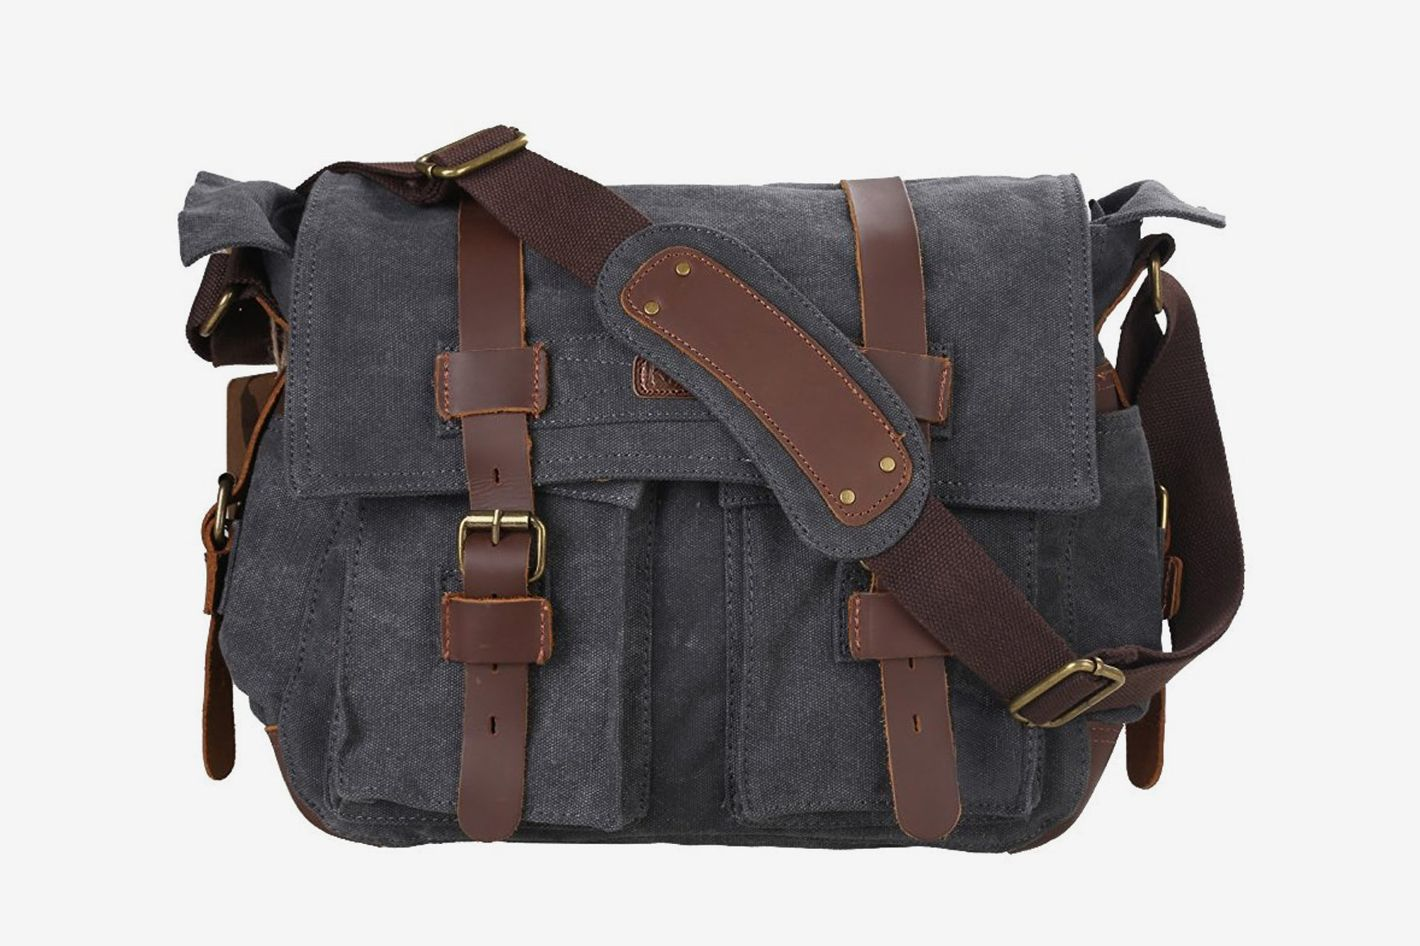 7310352c29 Kattee Leather Canvas Camera Bag Vintage DSLR SLR Messenger Shoulder Bag at  Amazon